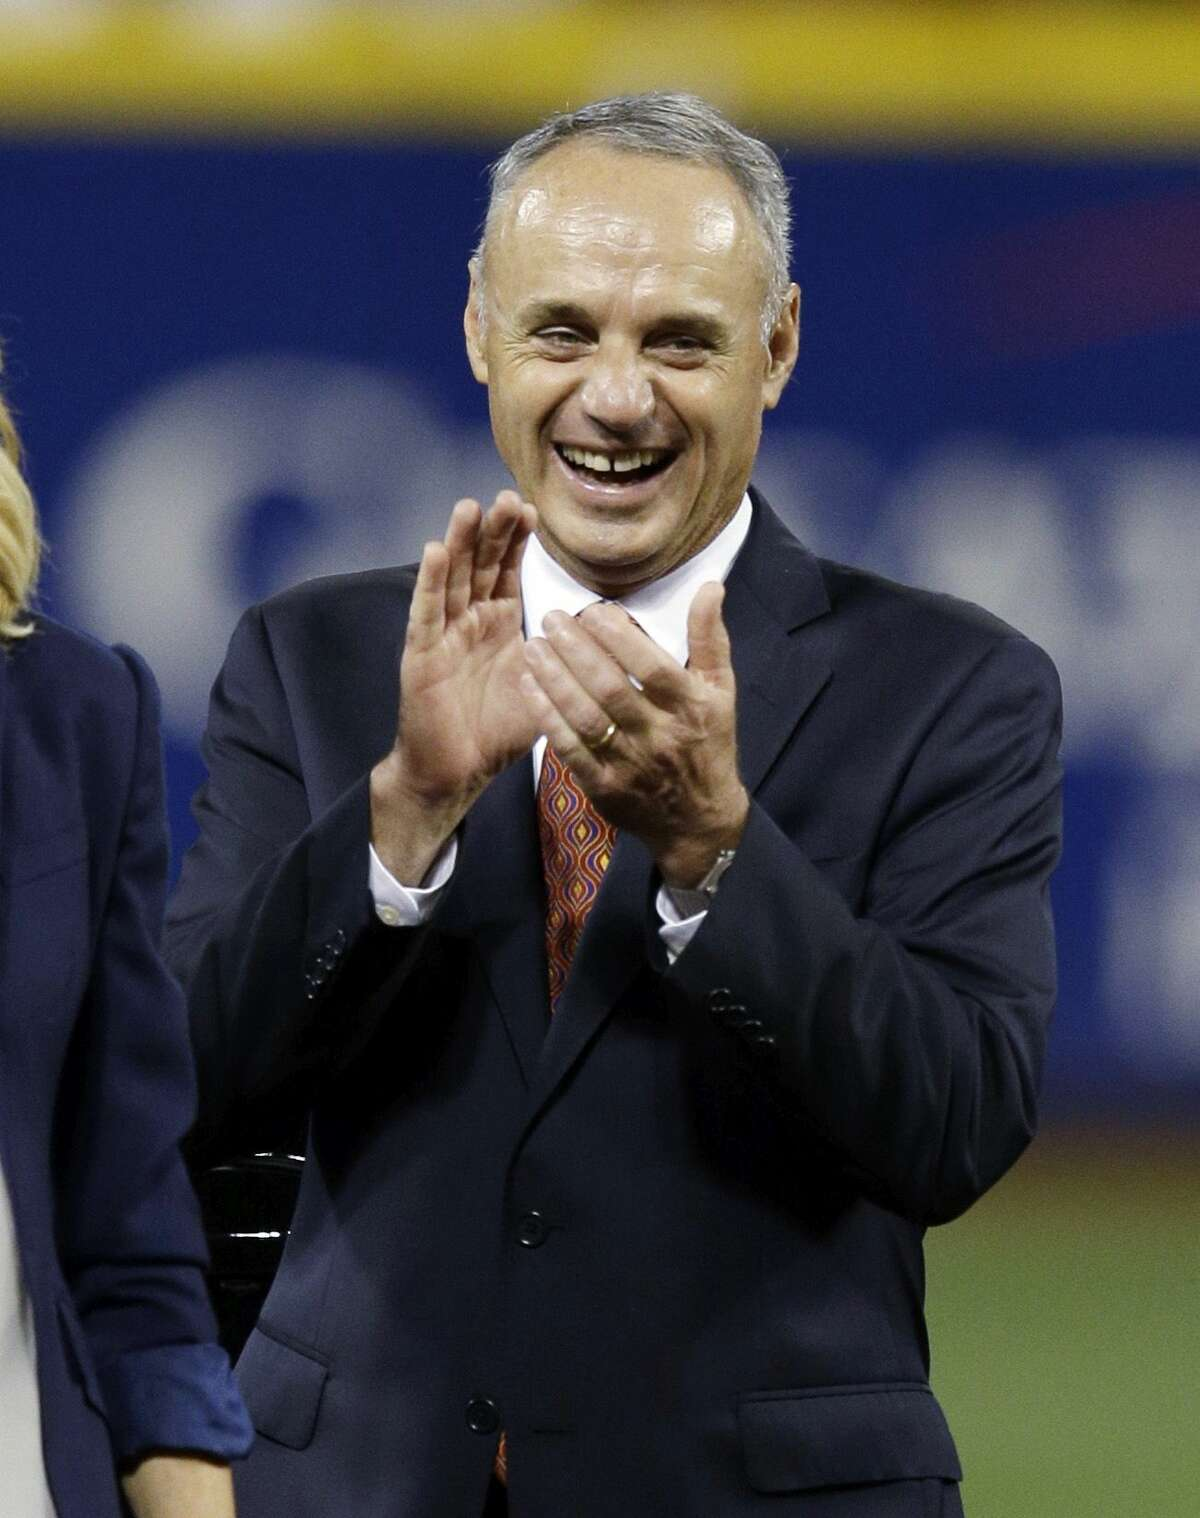 MLB Commissioner Rob Manfred claps after the MLB All-Star game in July.